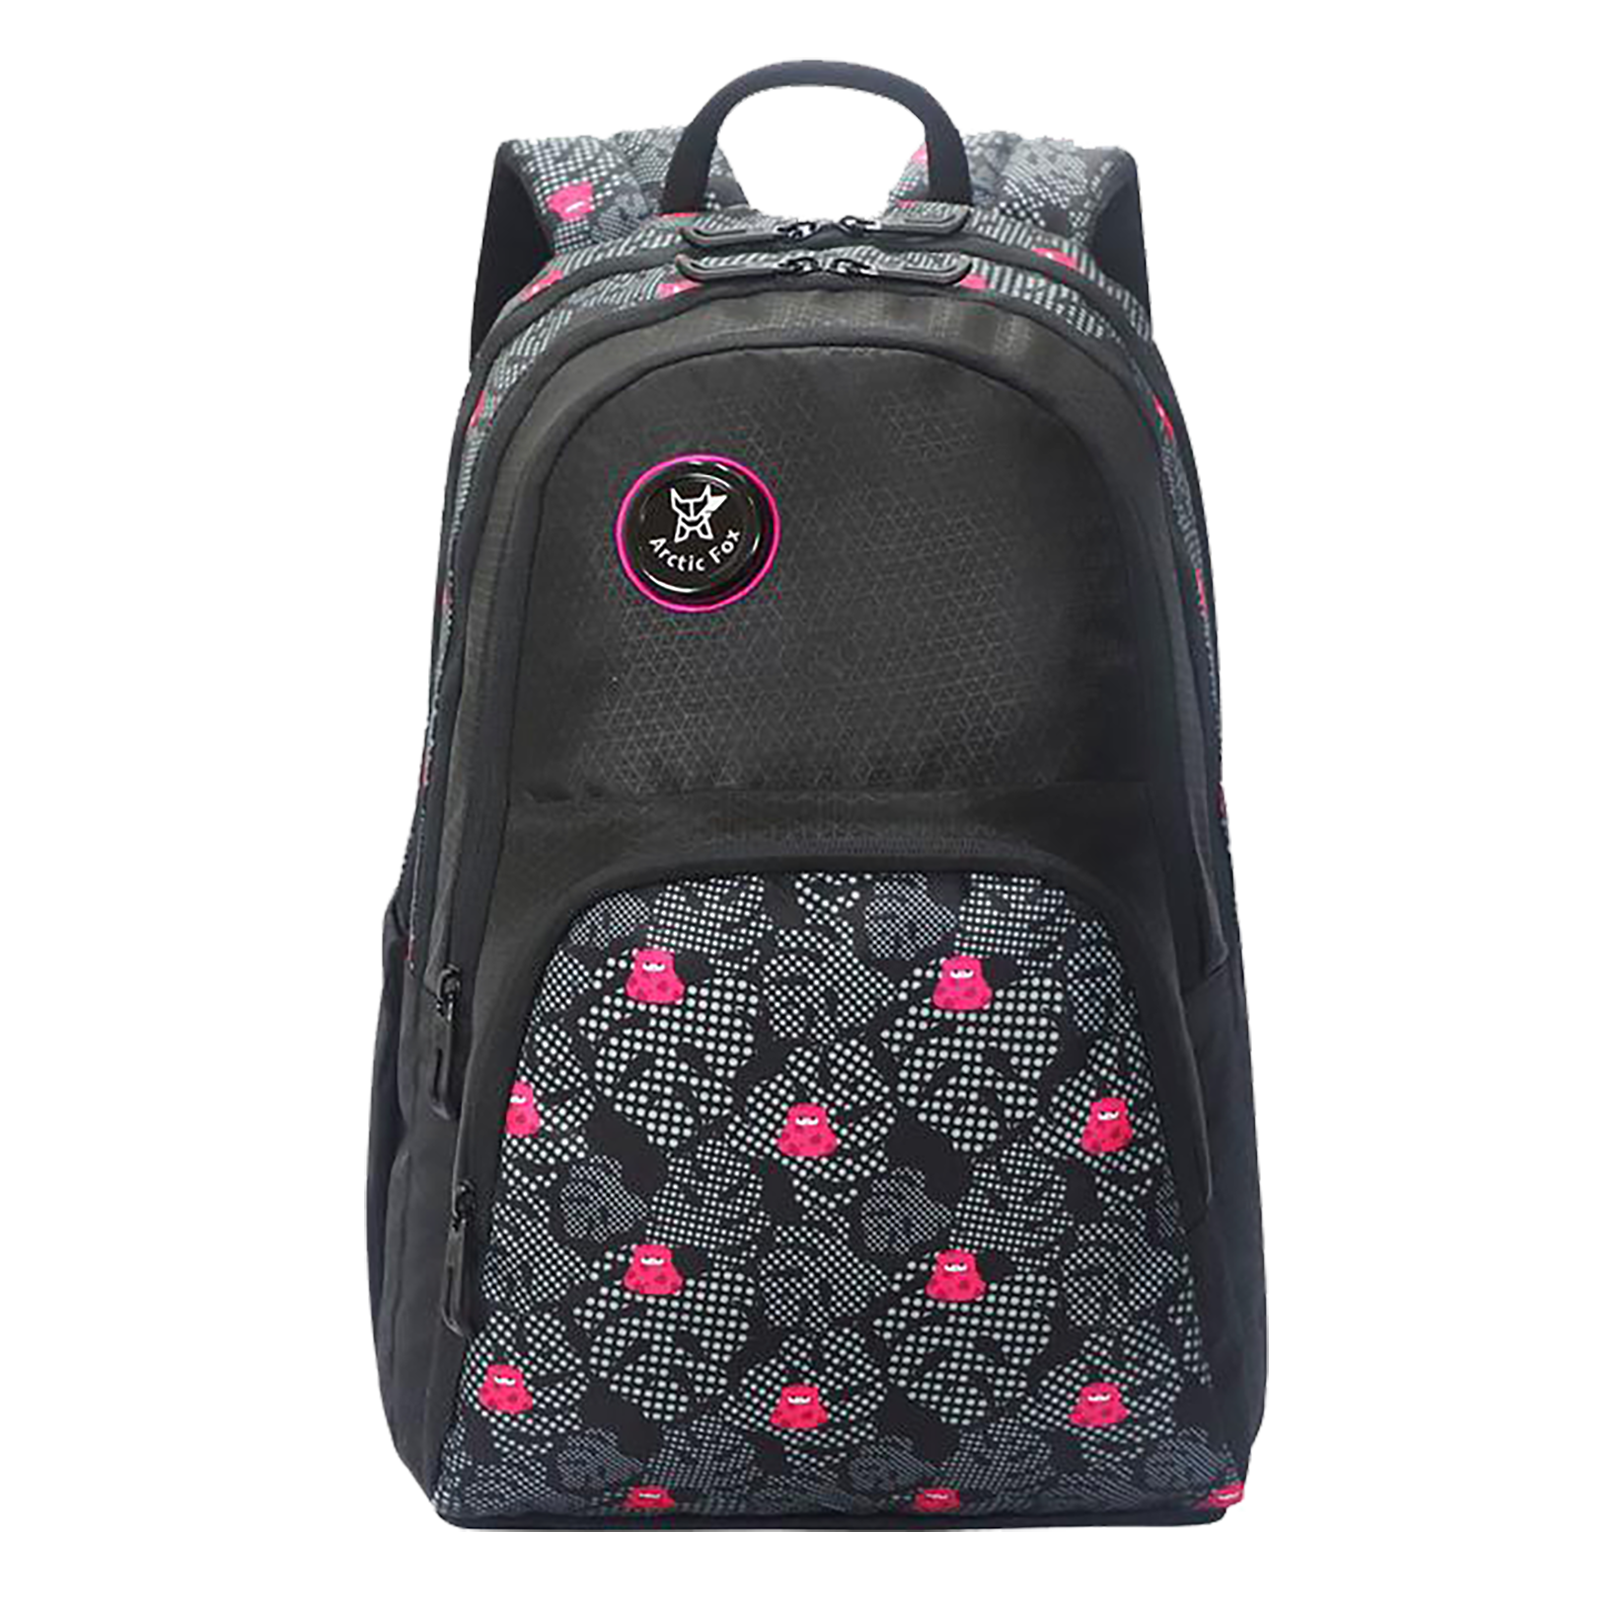 Arctic Fox Lama 31 Litres PU Coated Polyester Backpack (3 Spacious Compartments, FJUBPKBLKWZ072031, Black)_1